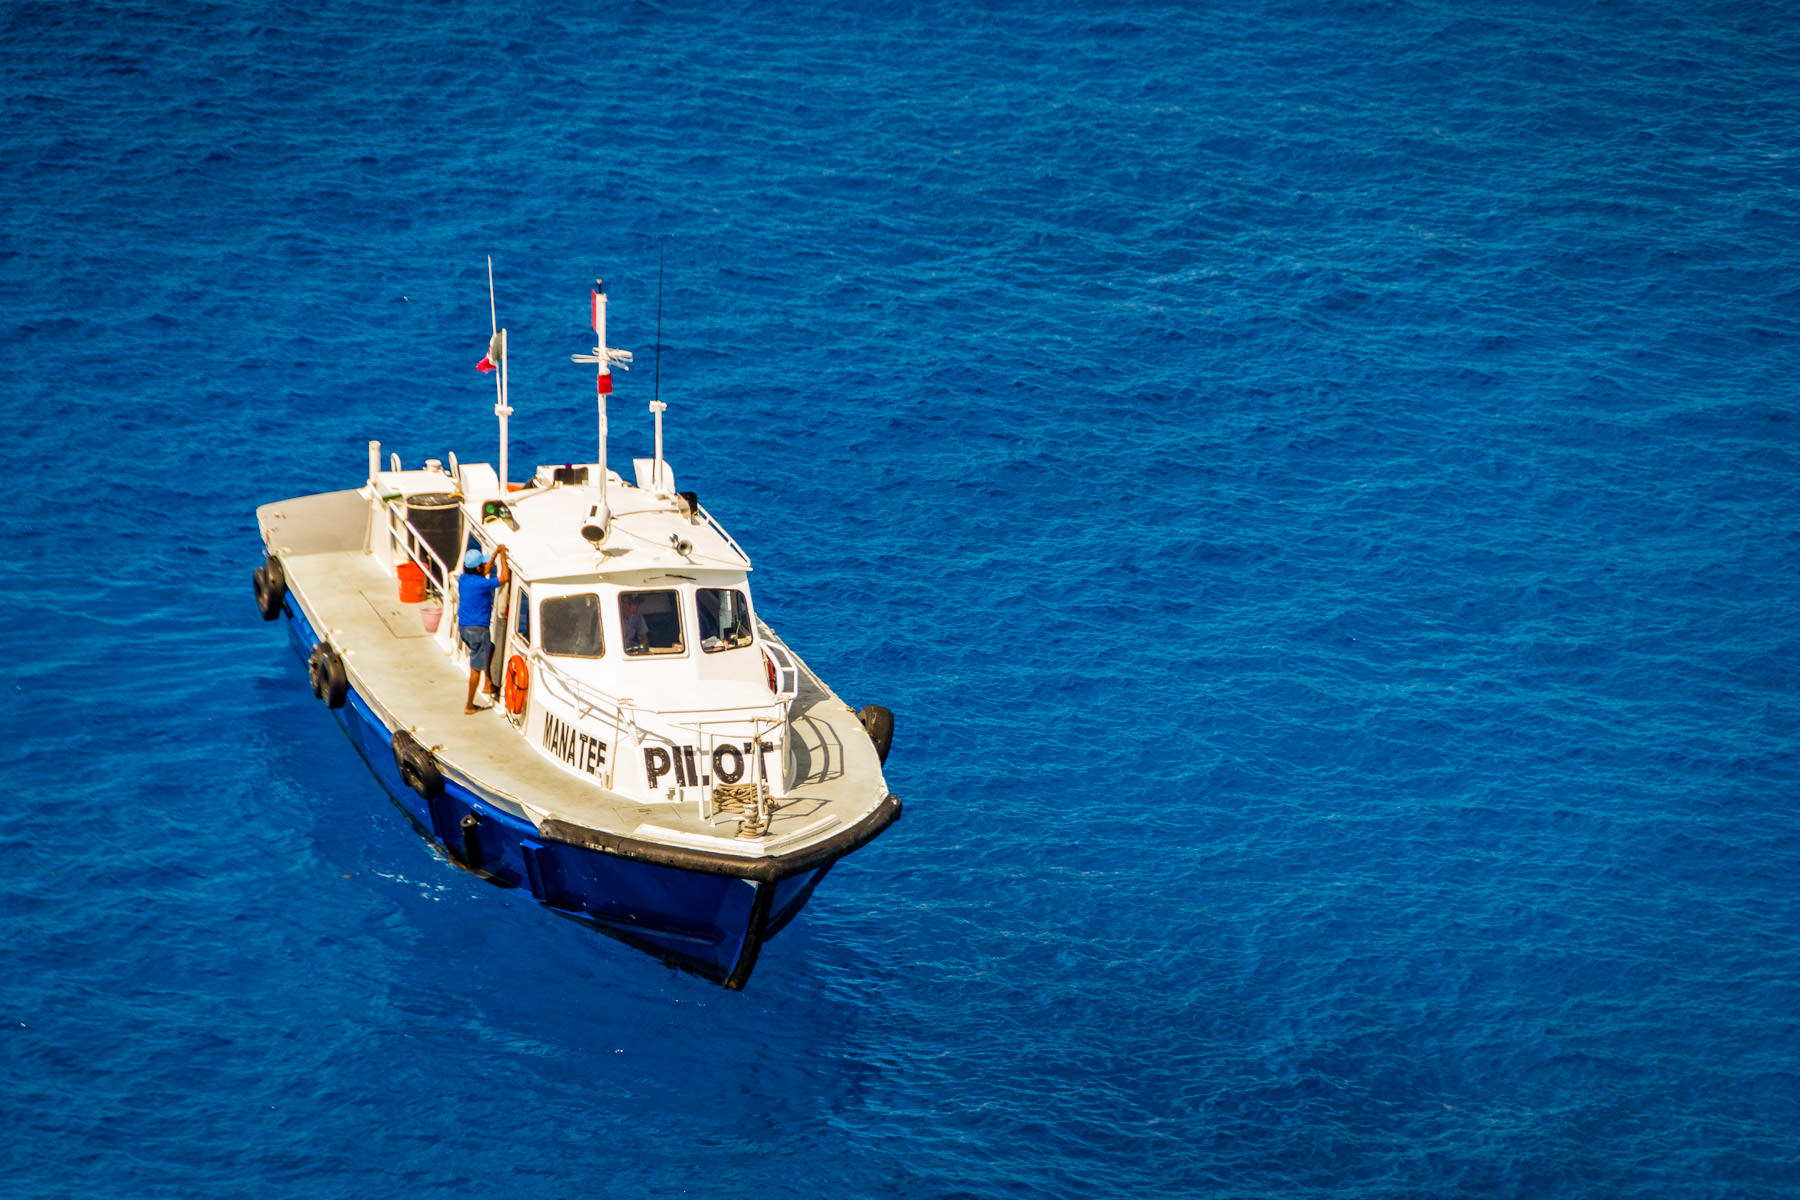 A port pilot's boat at Cozumel, Mexico.